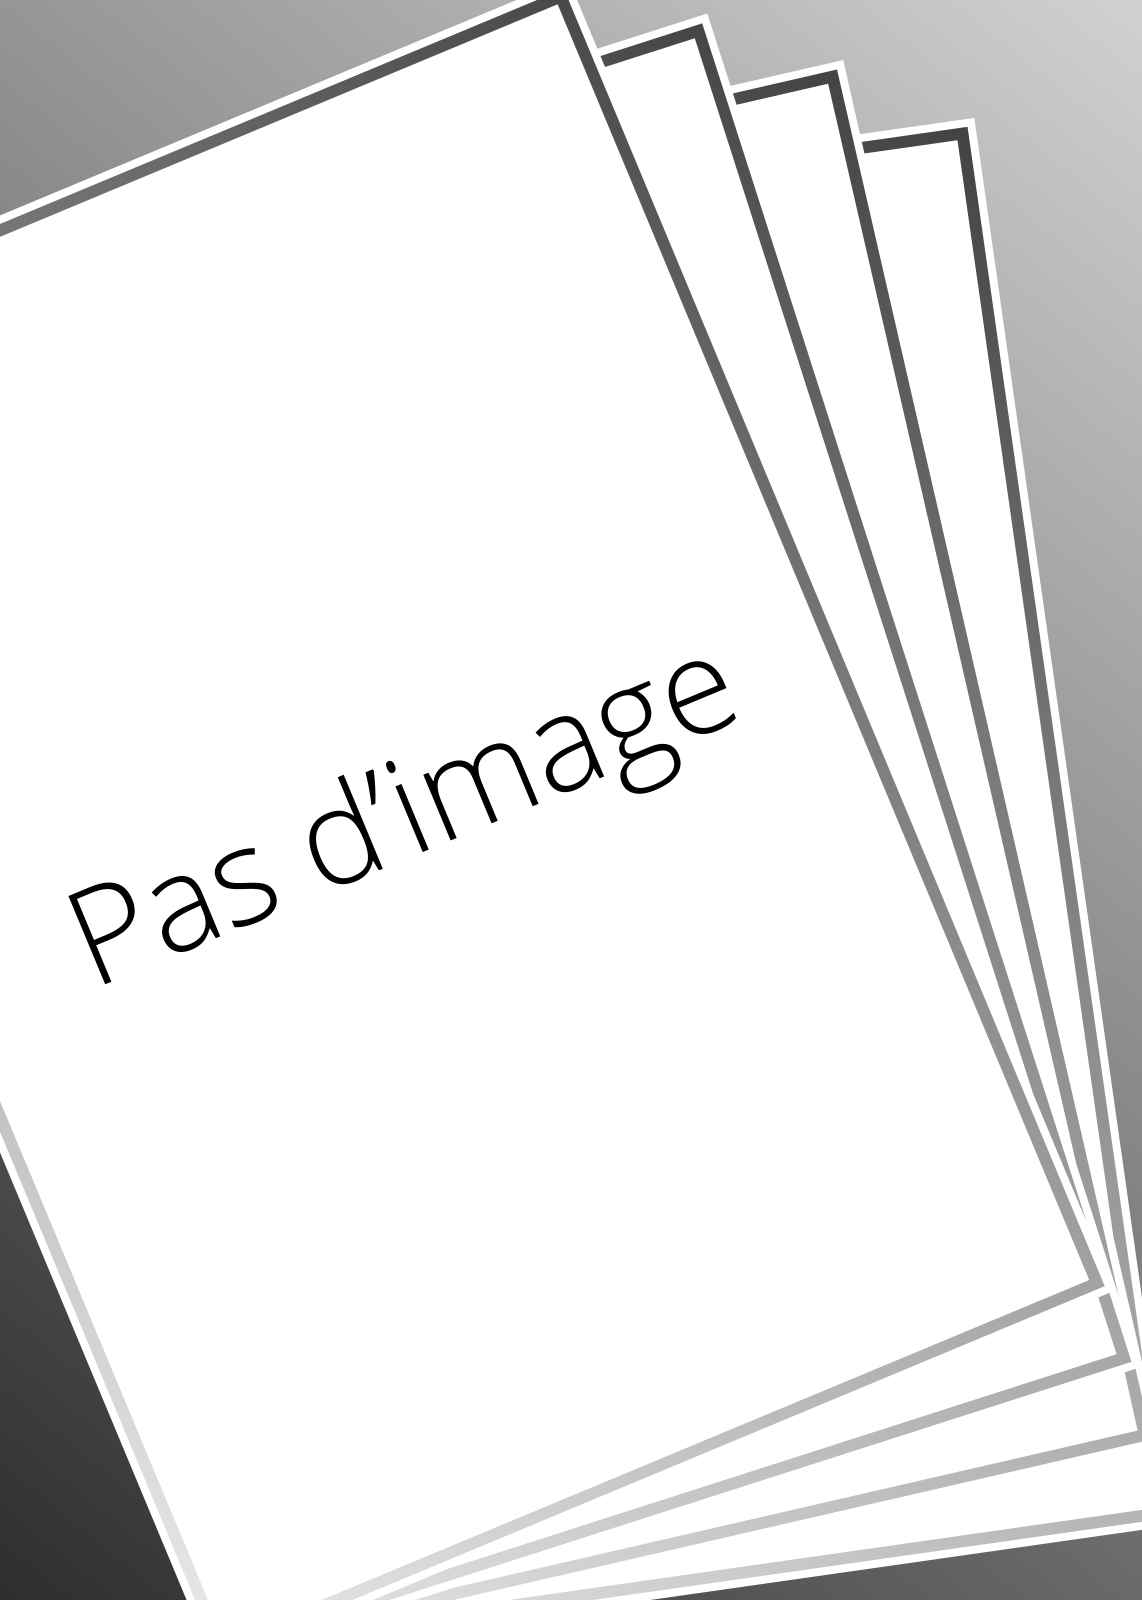 Pack arcade dentaire humaine + variations morphologiques des dents humaines